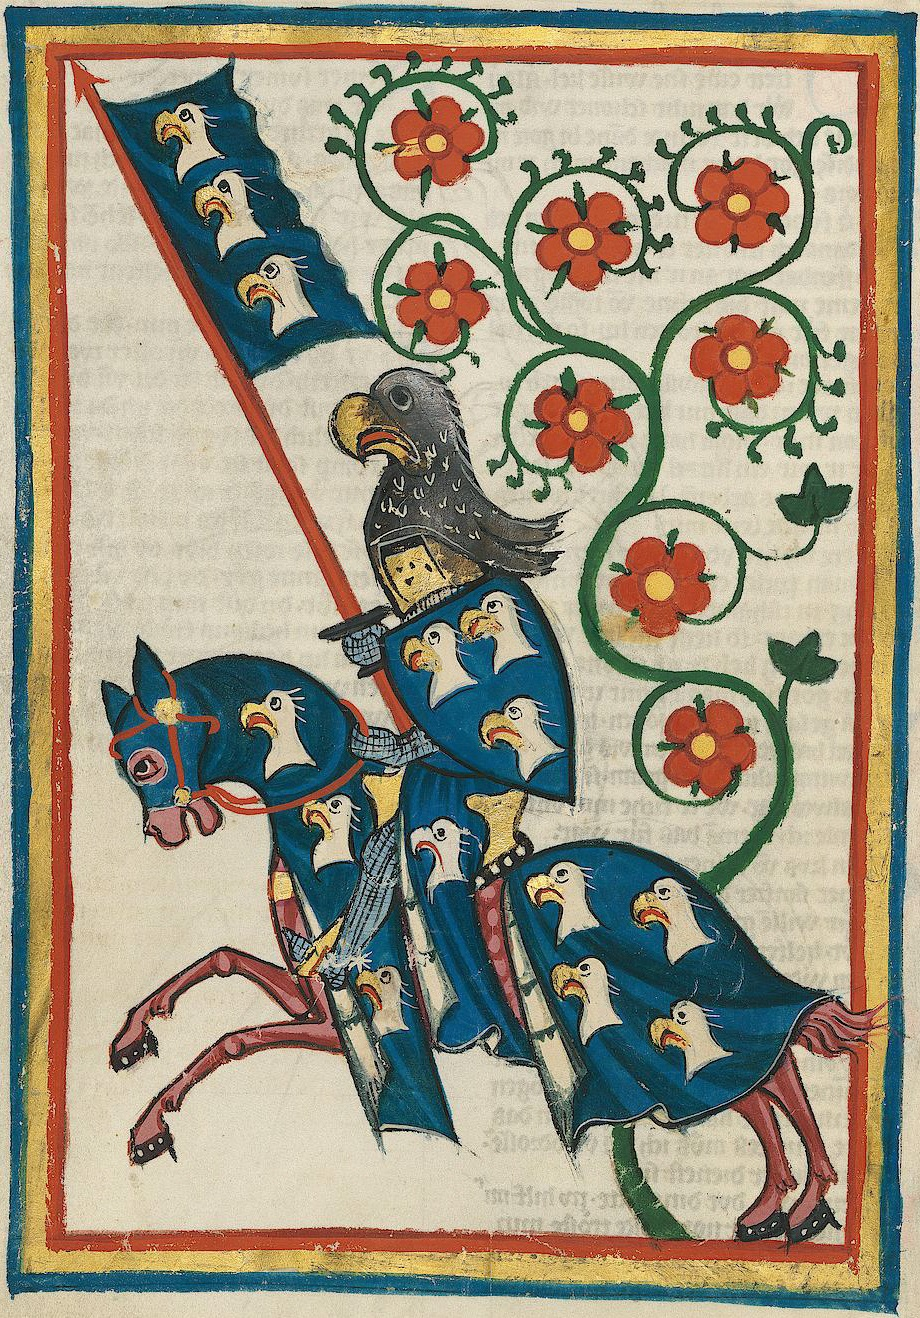 Codex_Manesse_Hartmann_von_Aue-detail.jpg